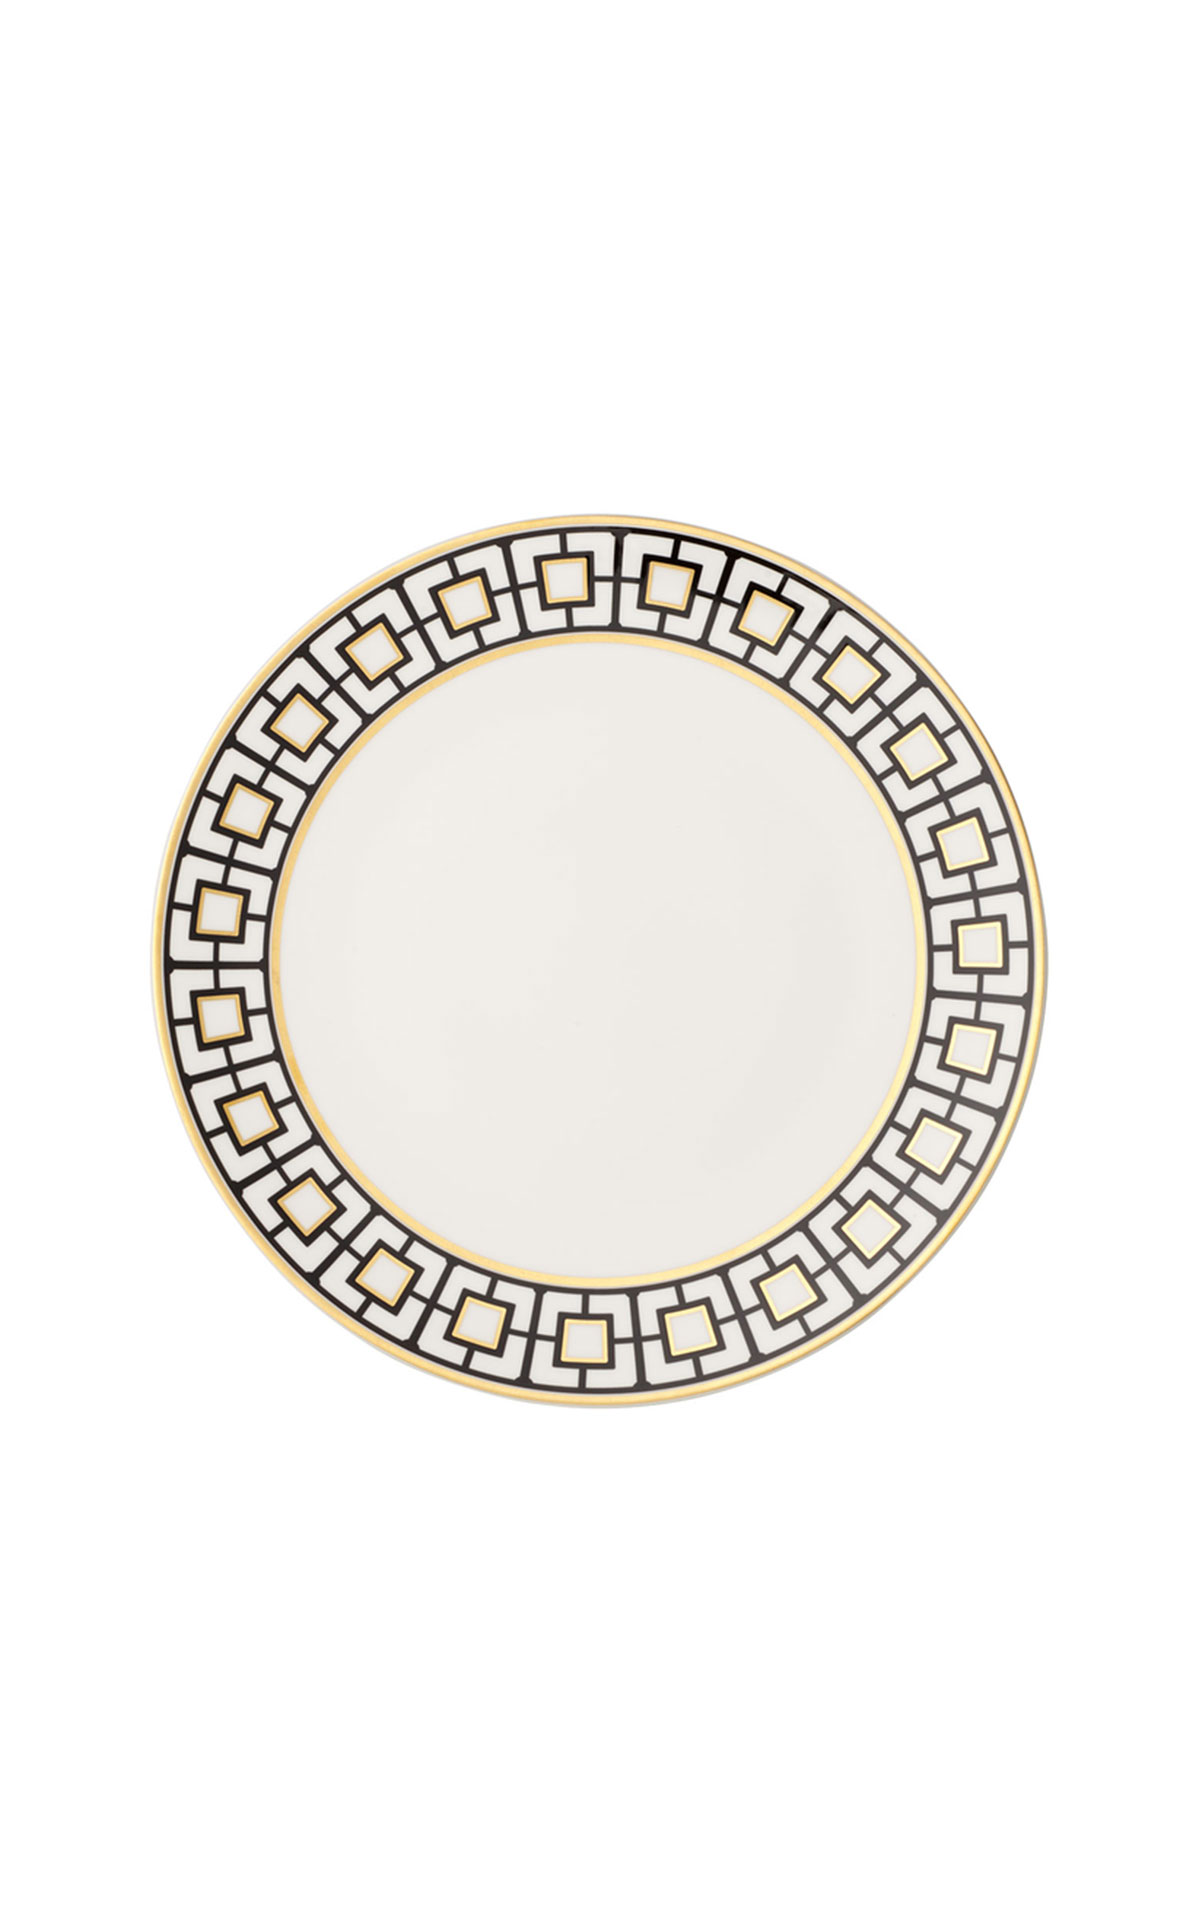 Villeroy & Boch Flat plate from Bicester Village